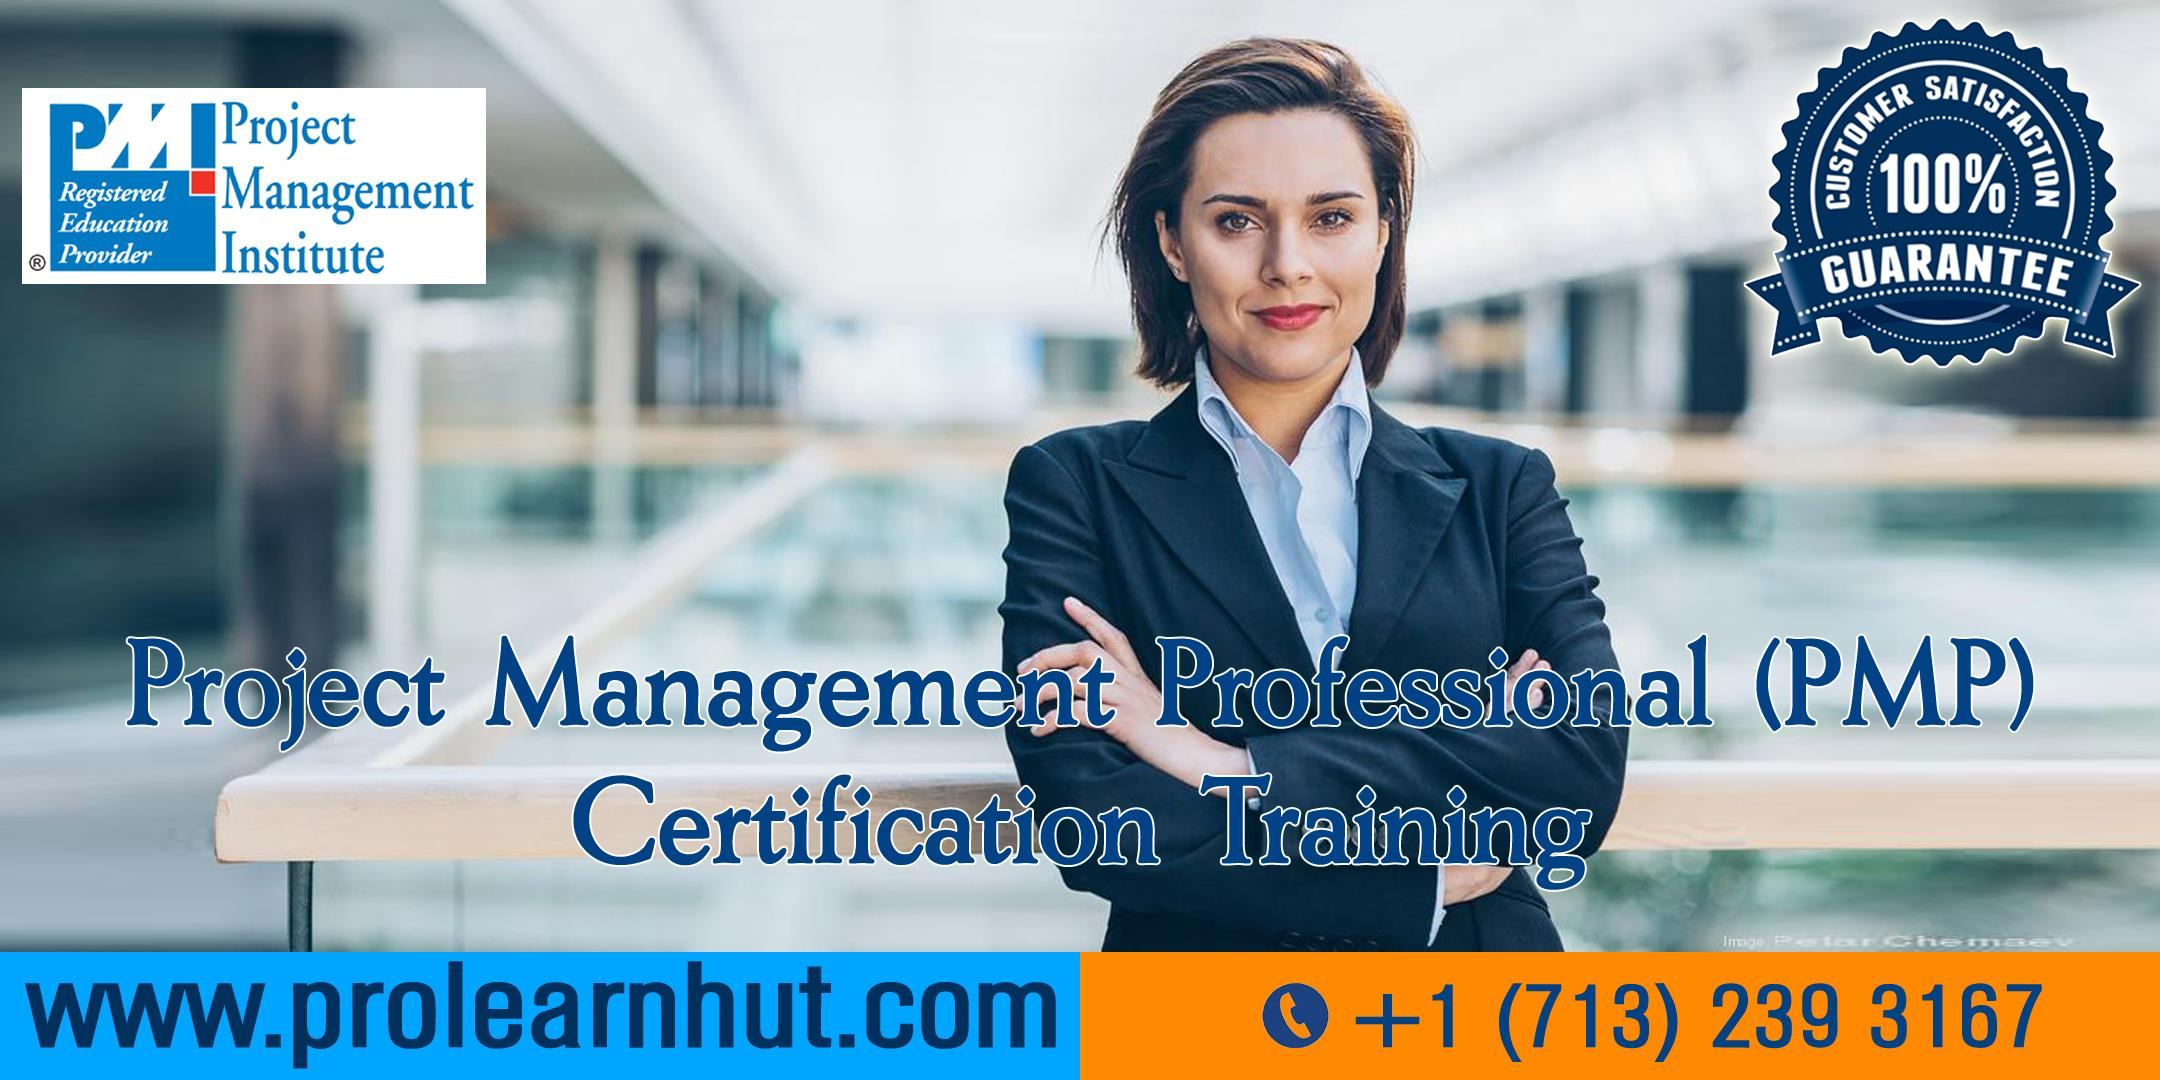 PMP Certification | Project Management Certification| PMP Training in Washington, DC | ProLearnHut